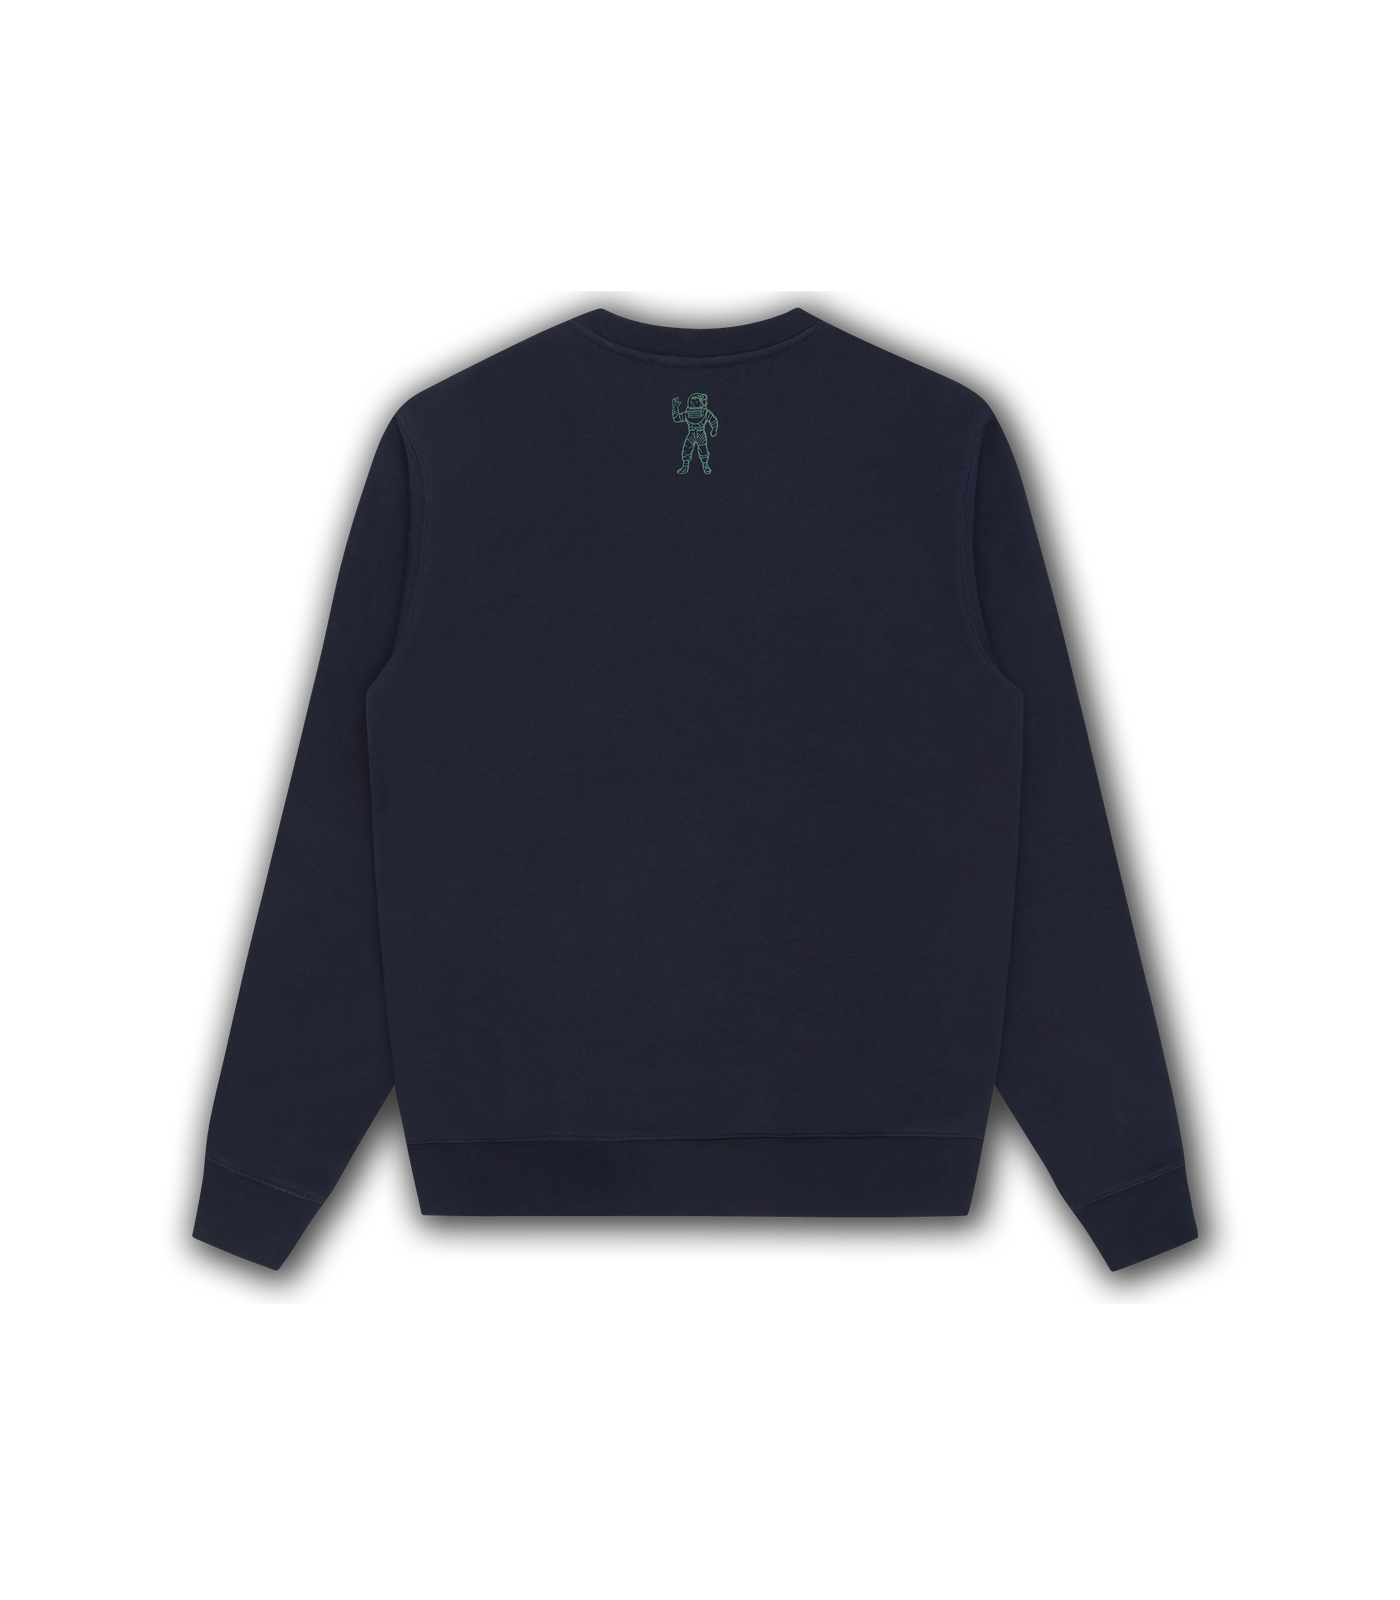 STRAIGHT LOGO CREWNECK - NAVY